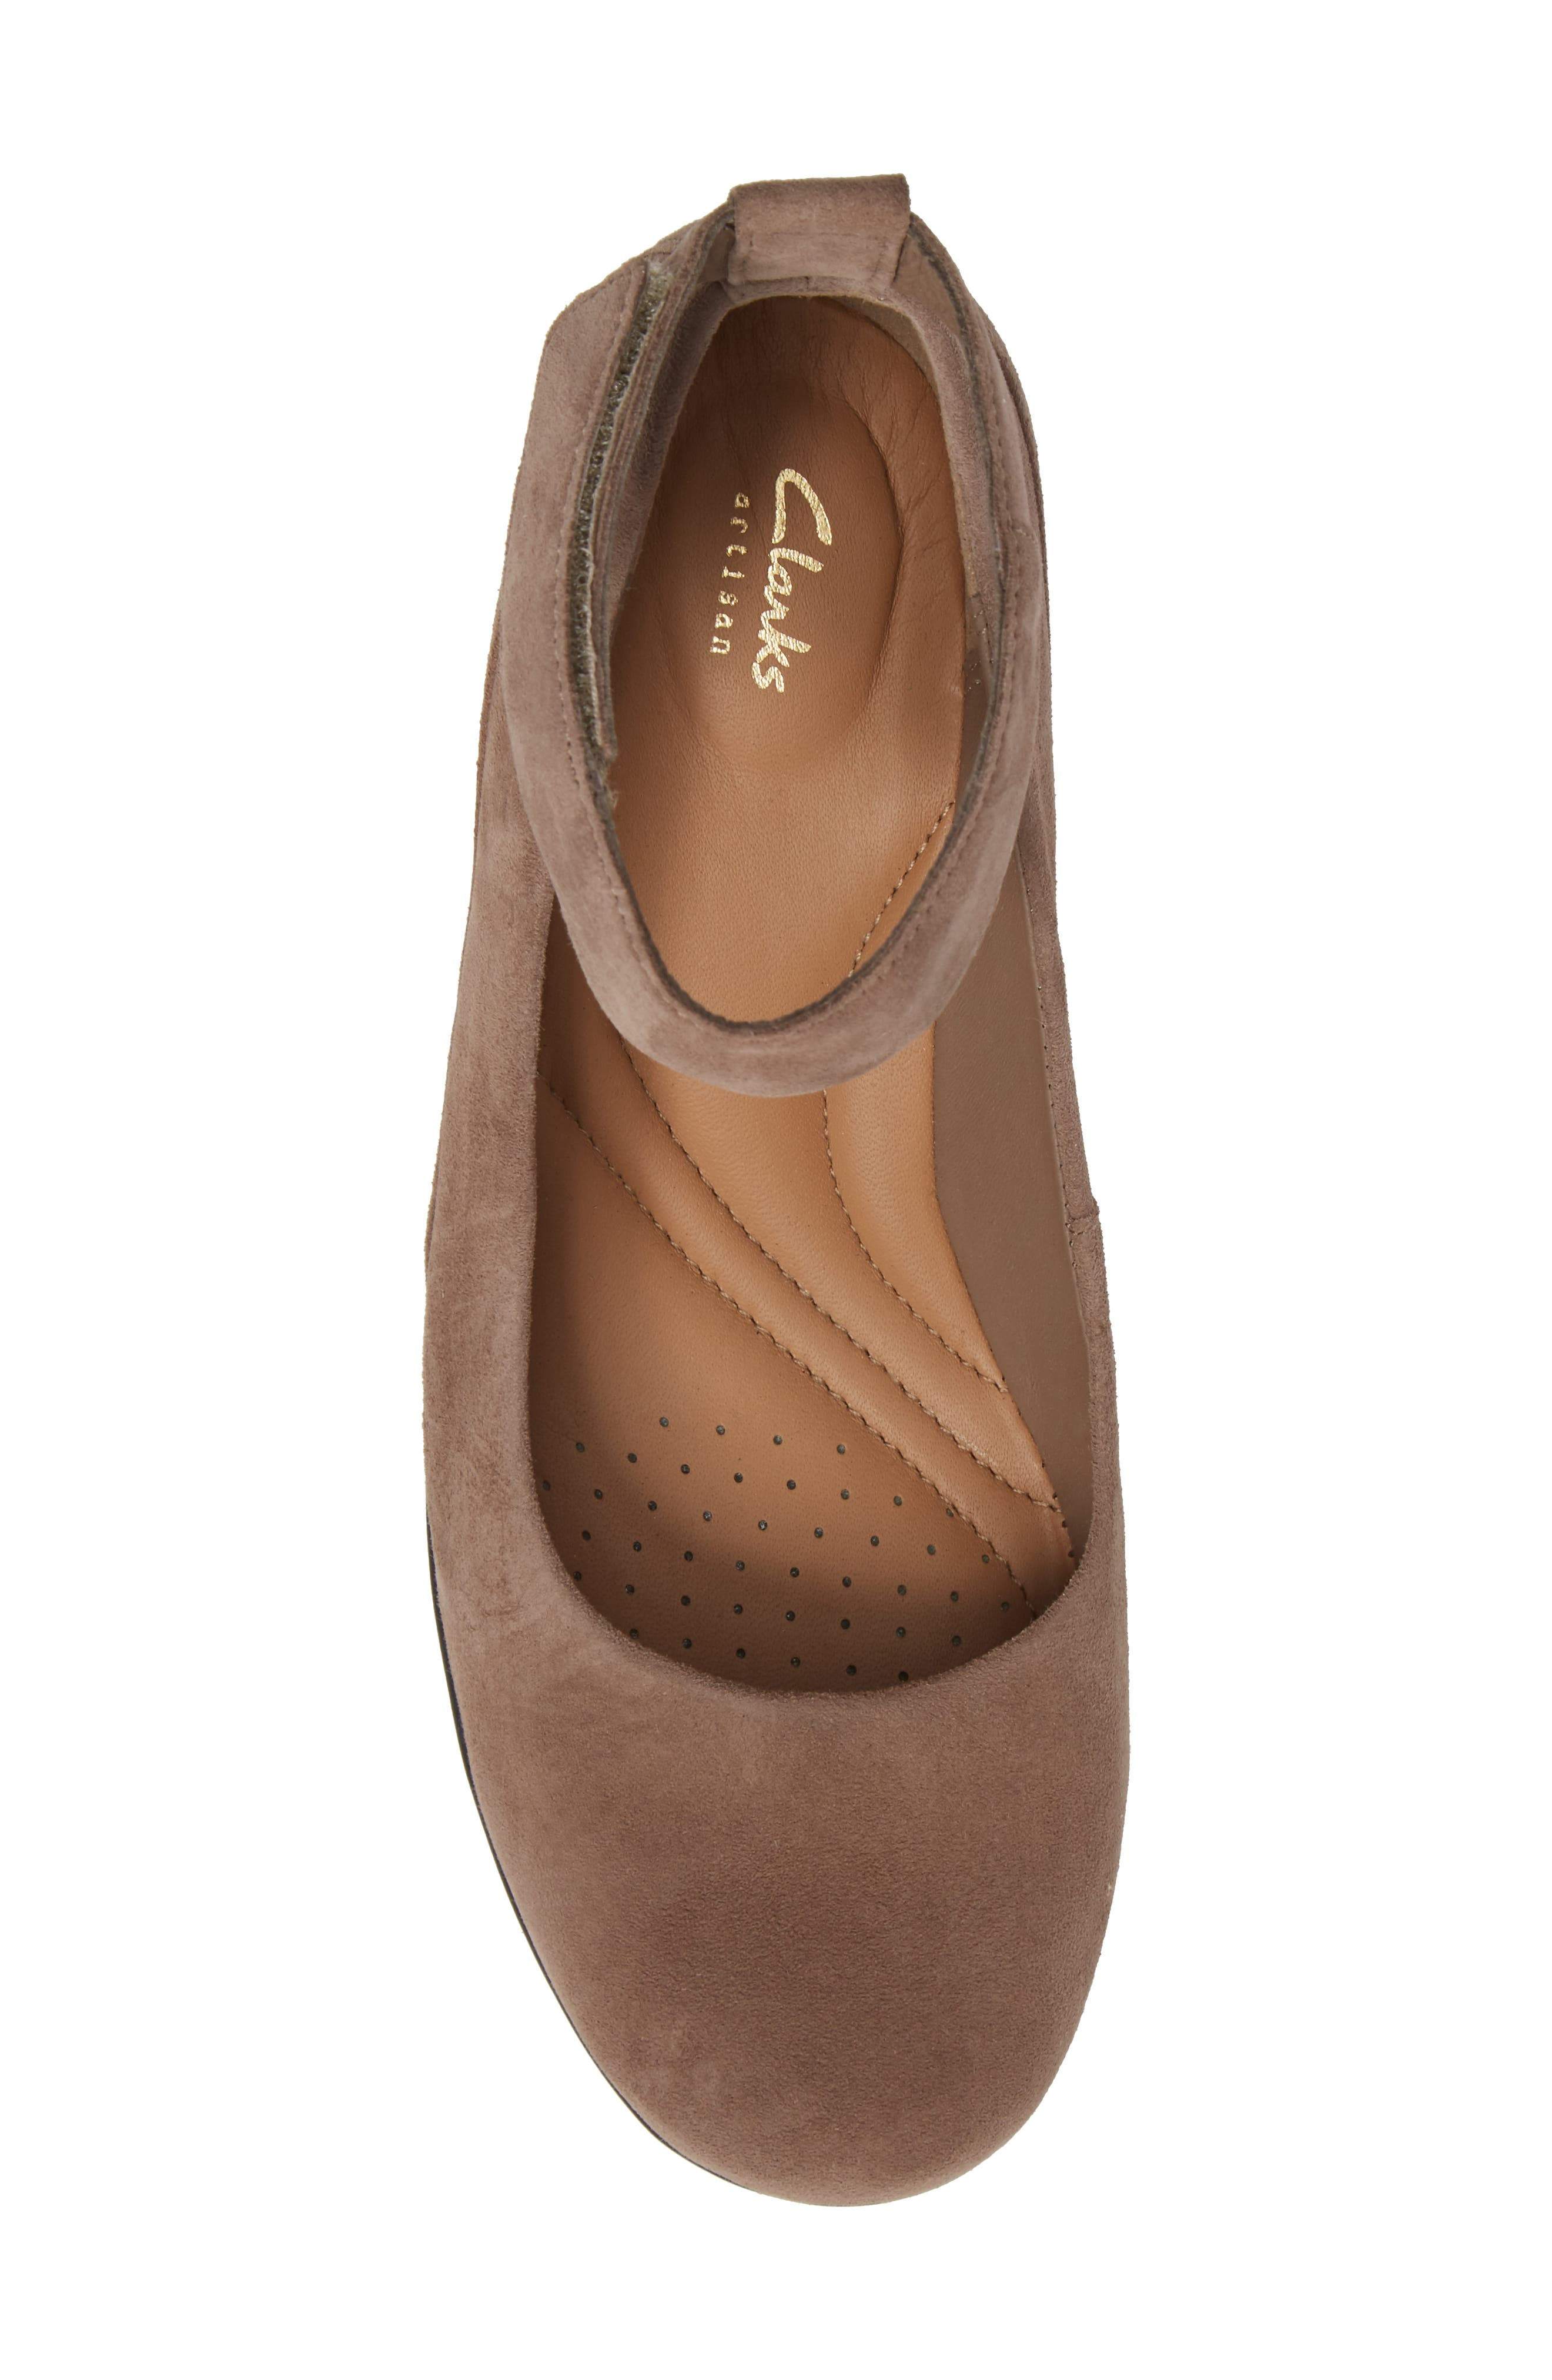 Wynnmere Fox Ankle Strap Pump,                             Alternate thumbnail 5, color,                             Pebble Suede